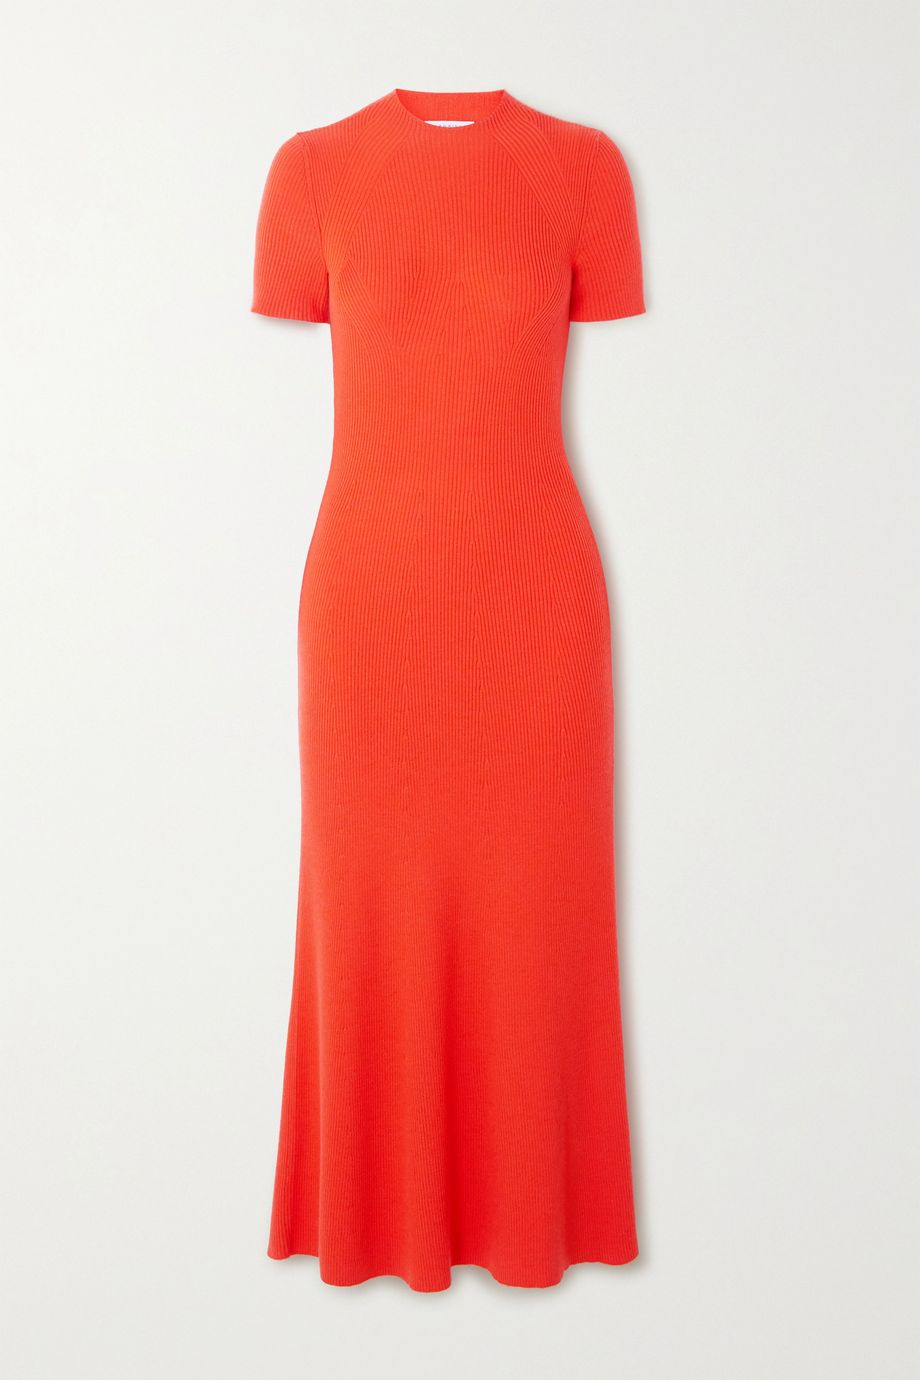 Gabriela Hearst Clare ribbed wool midi dress